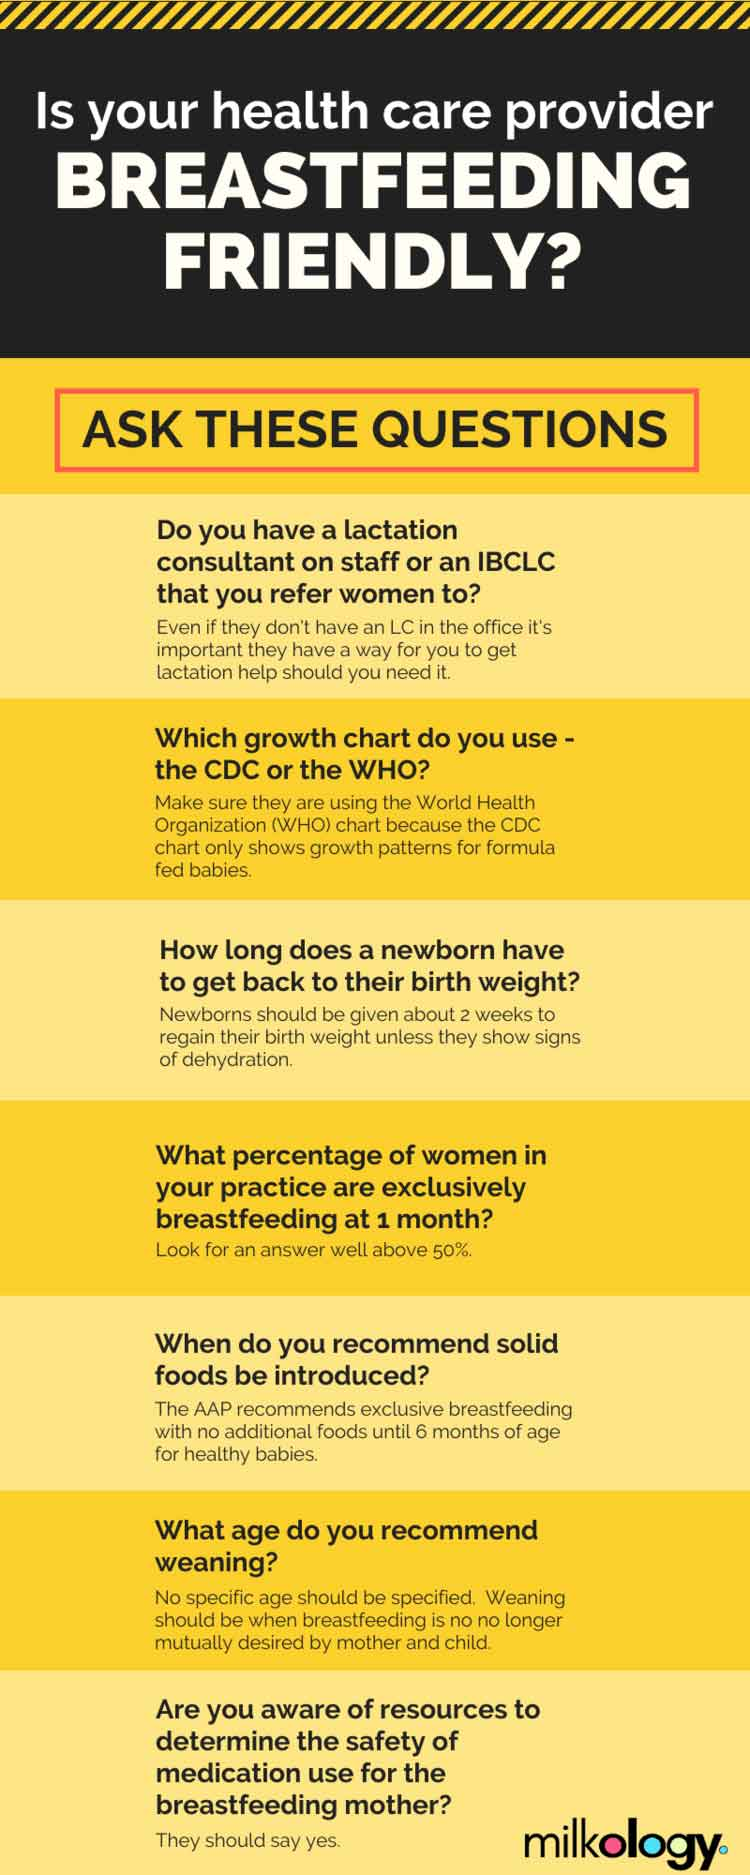 breastfeeding infographic from Milkology